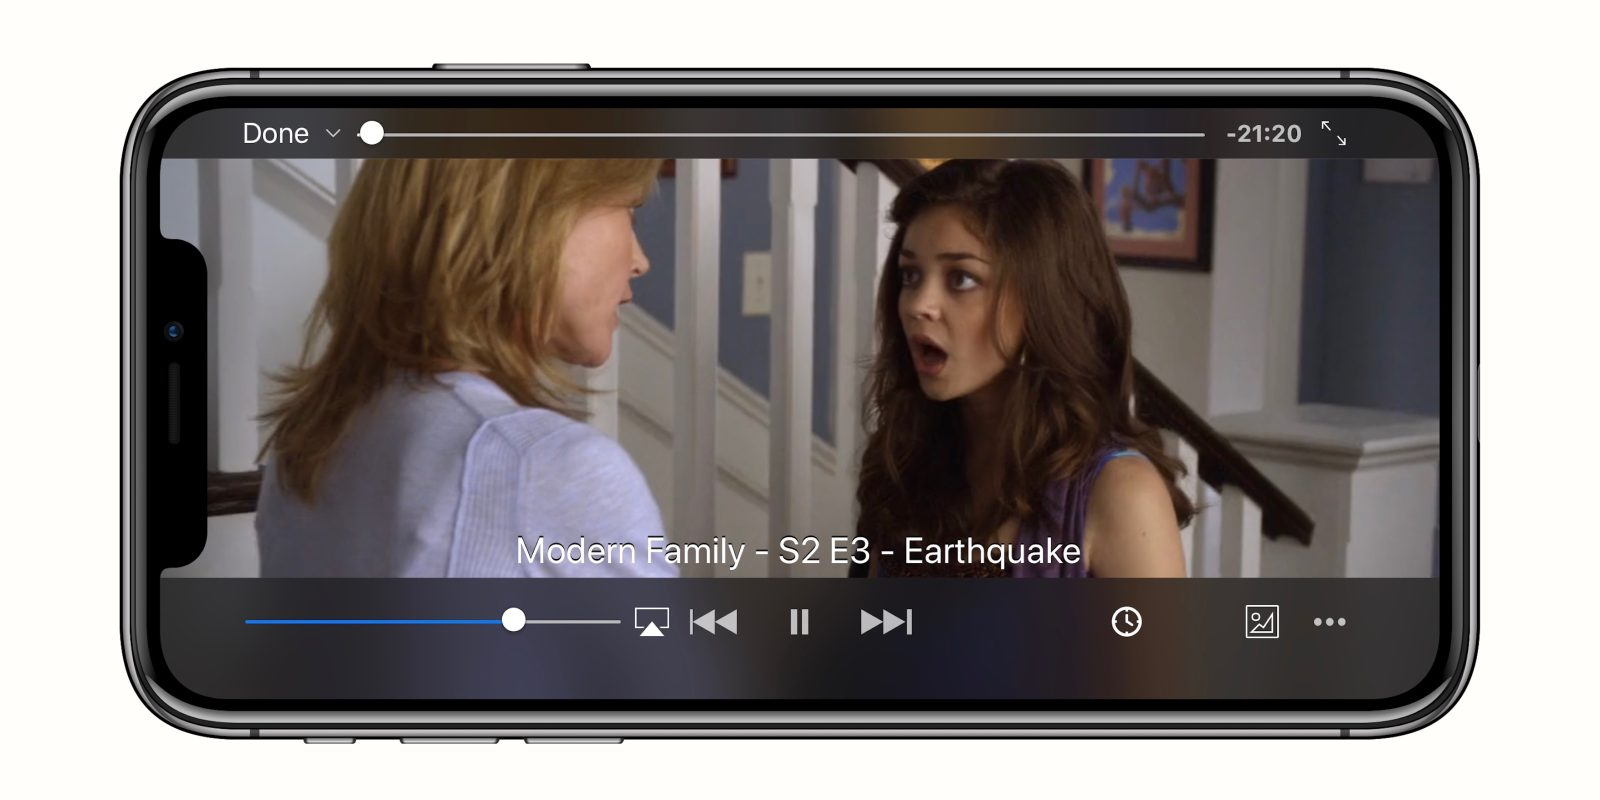 VLC media player for iOS now optimized for iPhone X screen, HEVC 4K